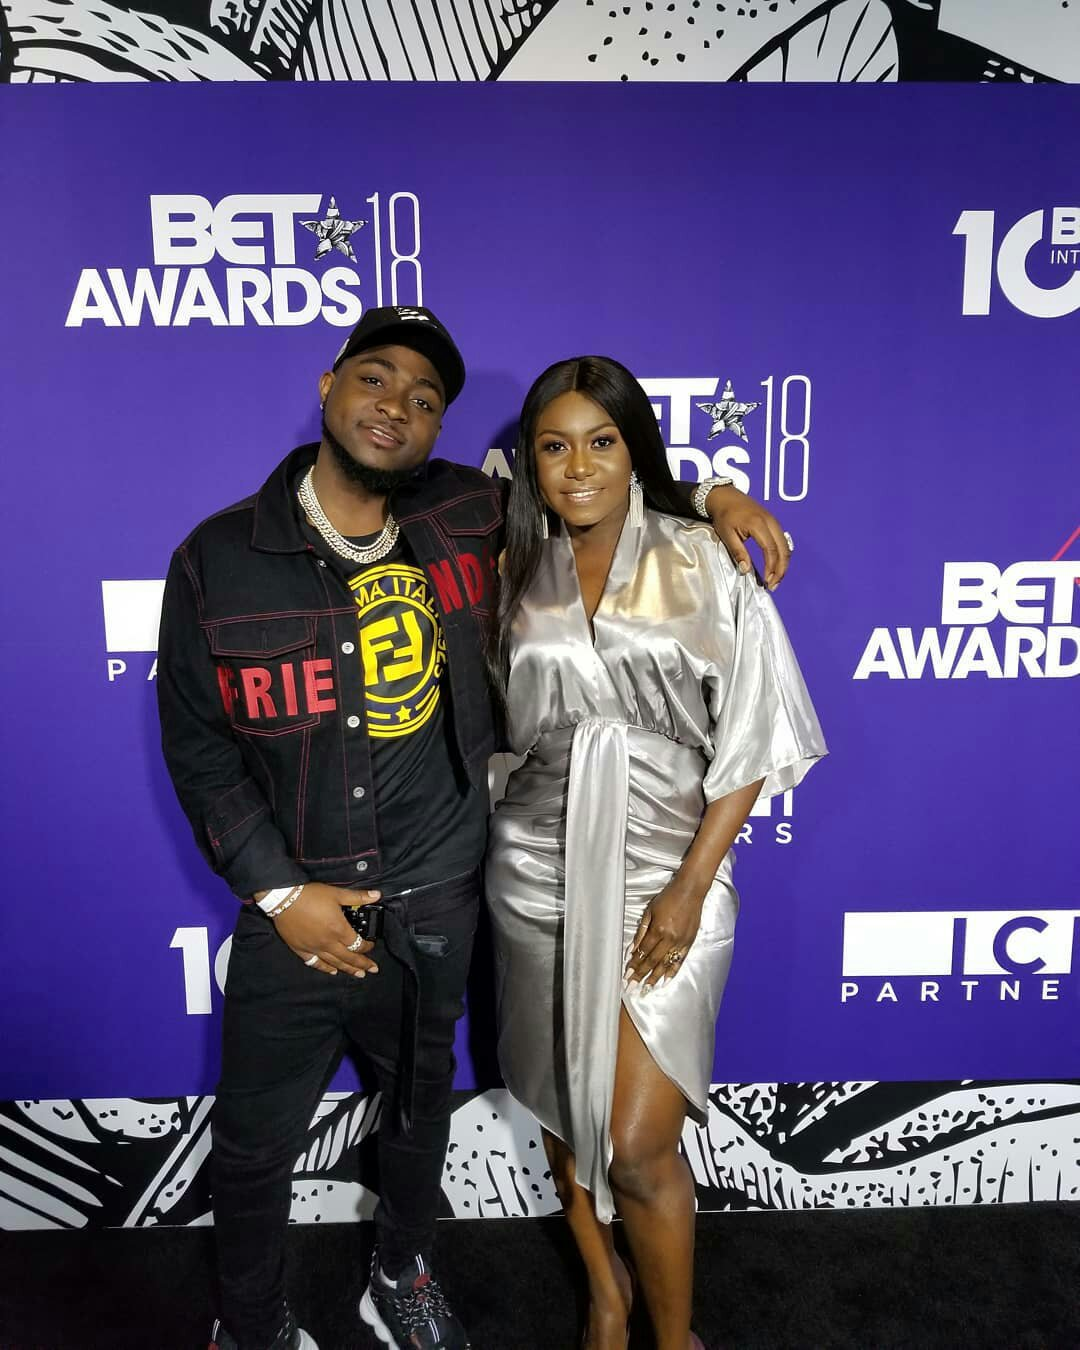 Niniola & Davido Pictured at Pre-BET Events in Los Angeles